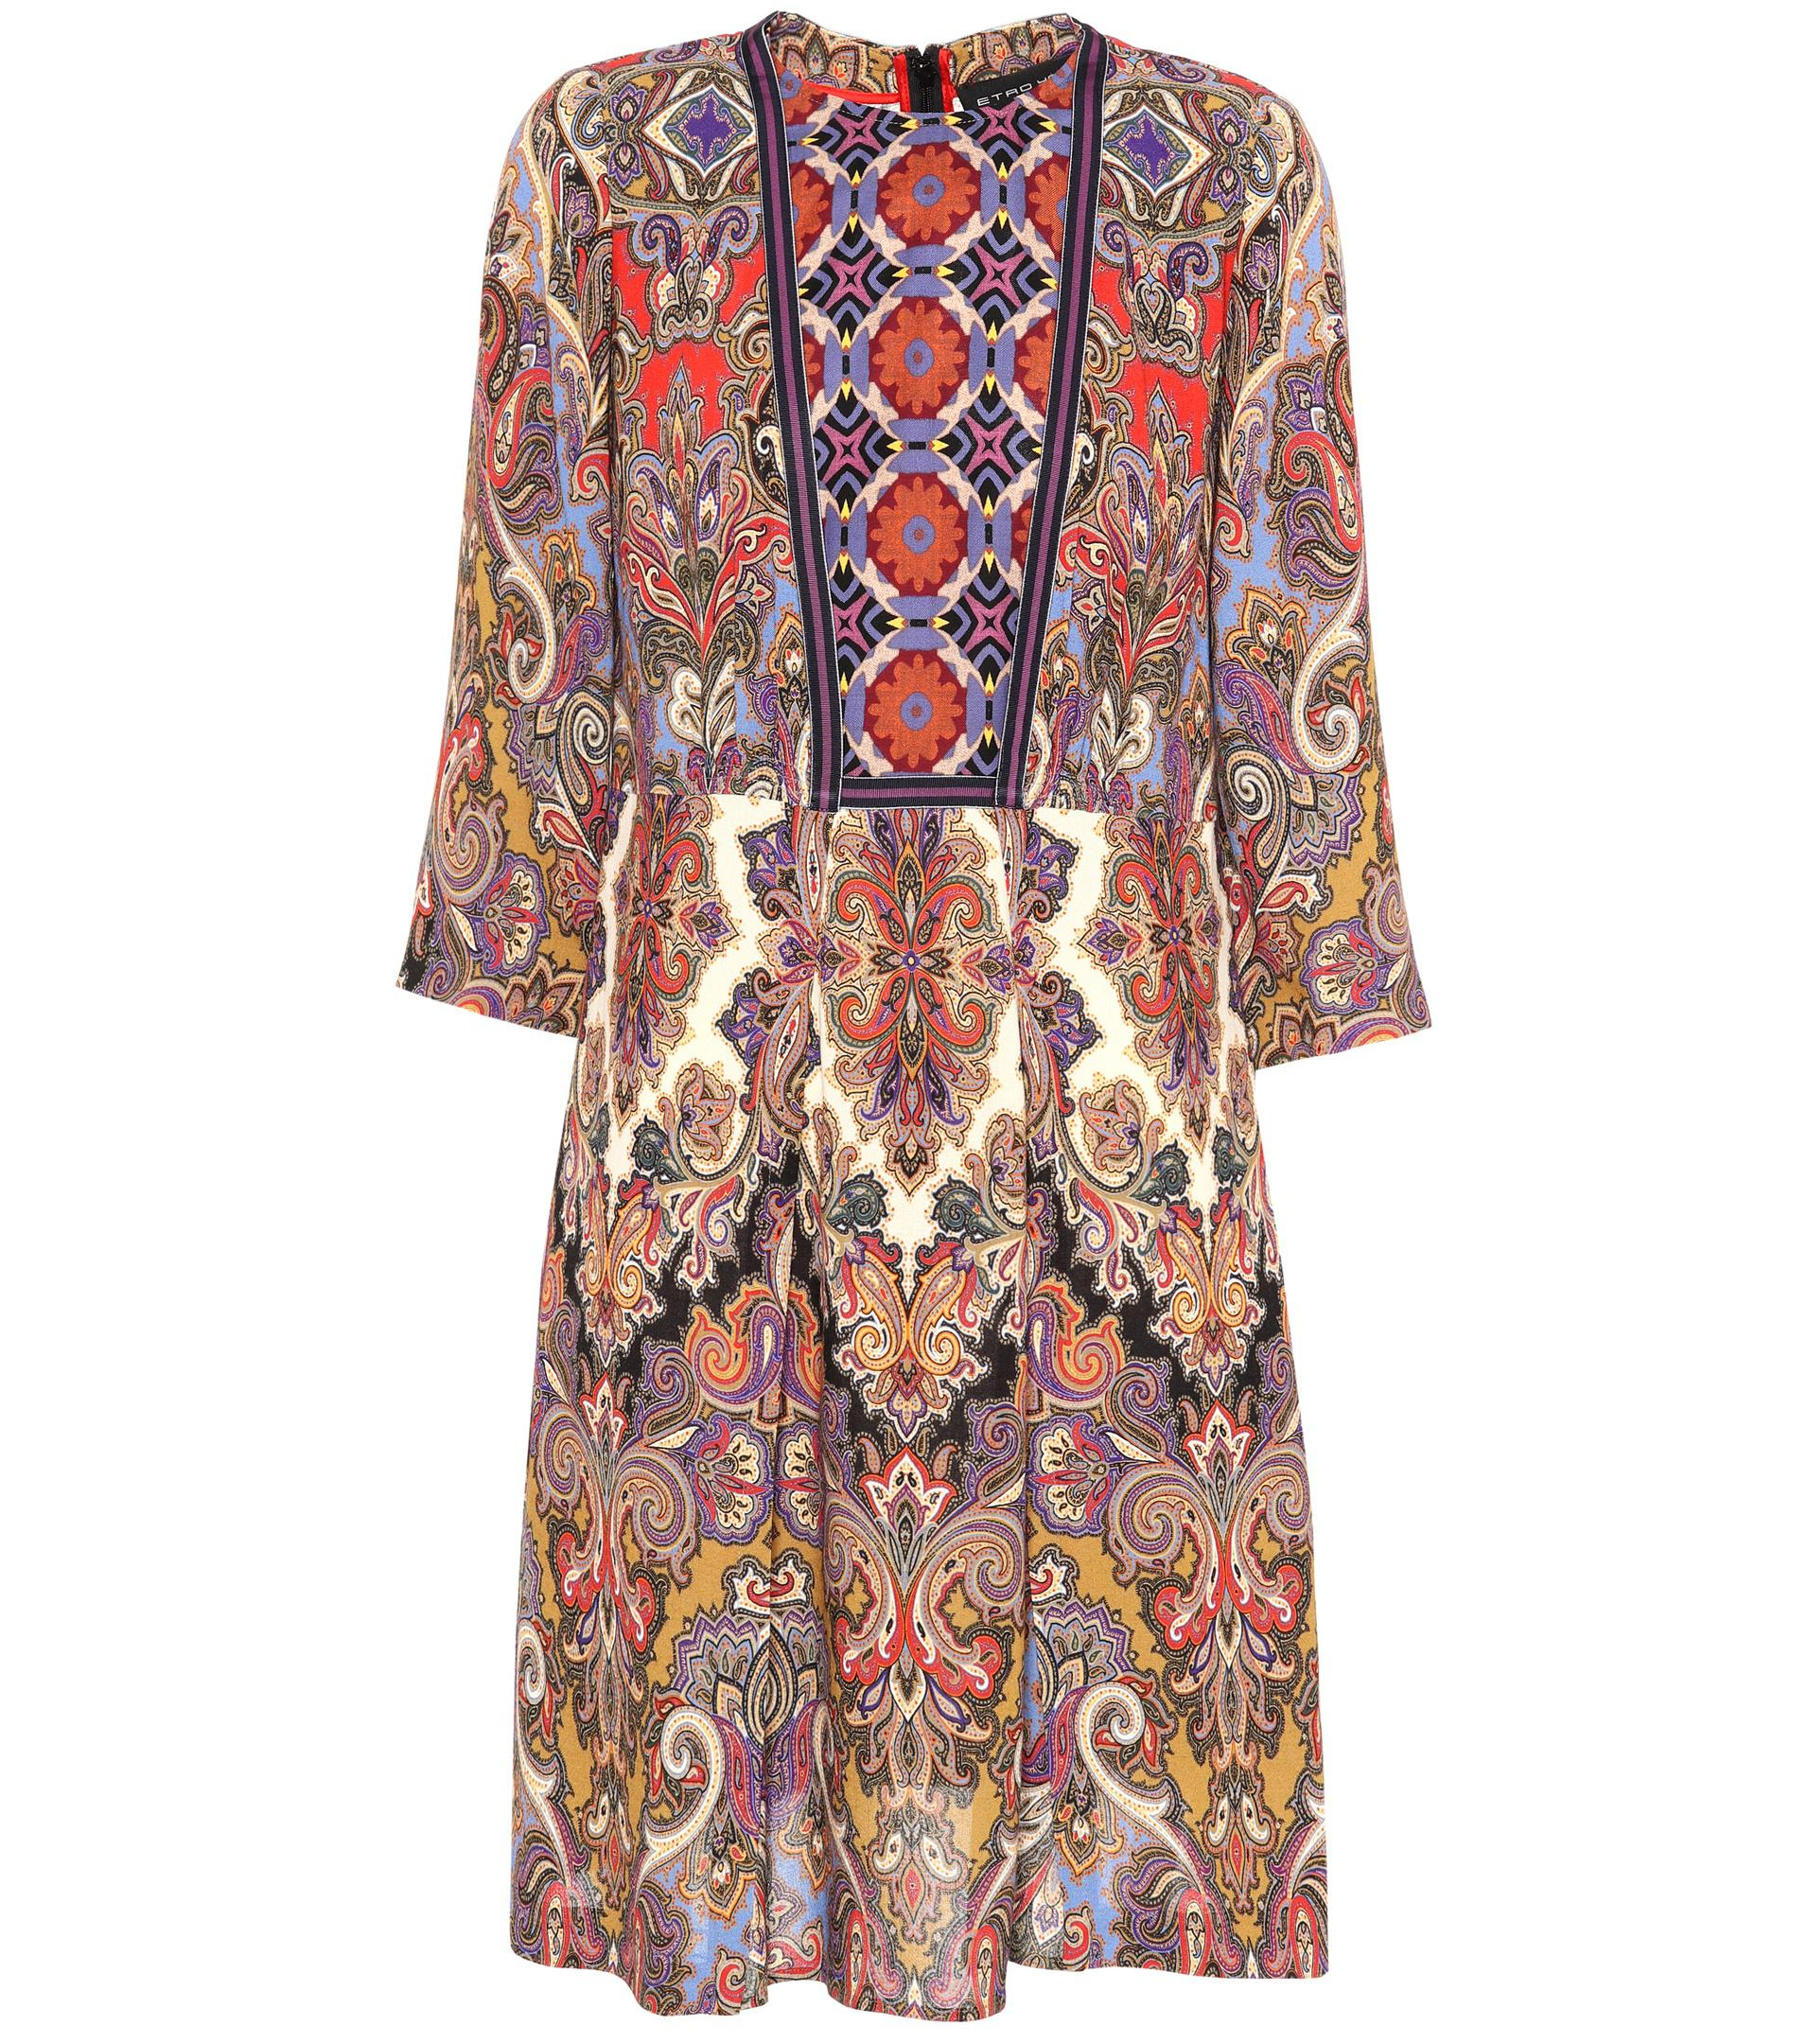 Paisley and floral-printed dress Etro